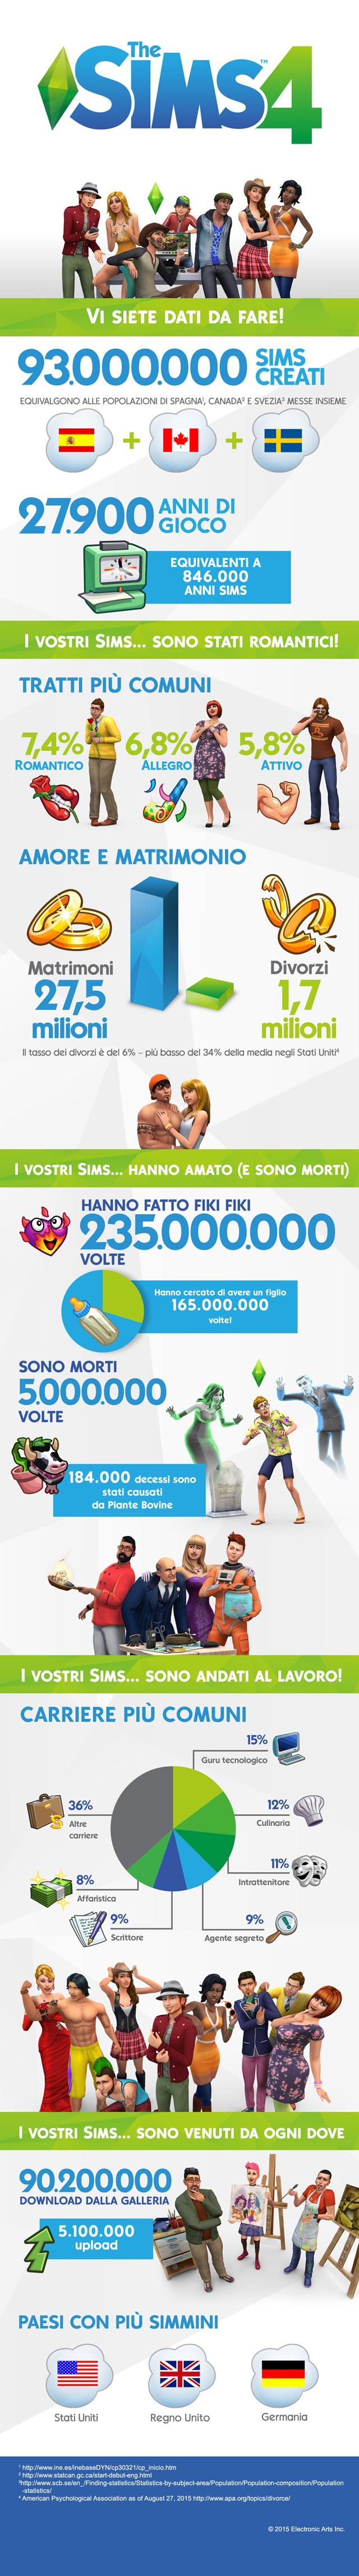 the sims 4 infografica